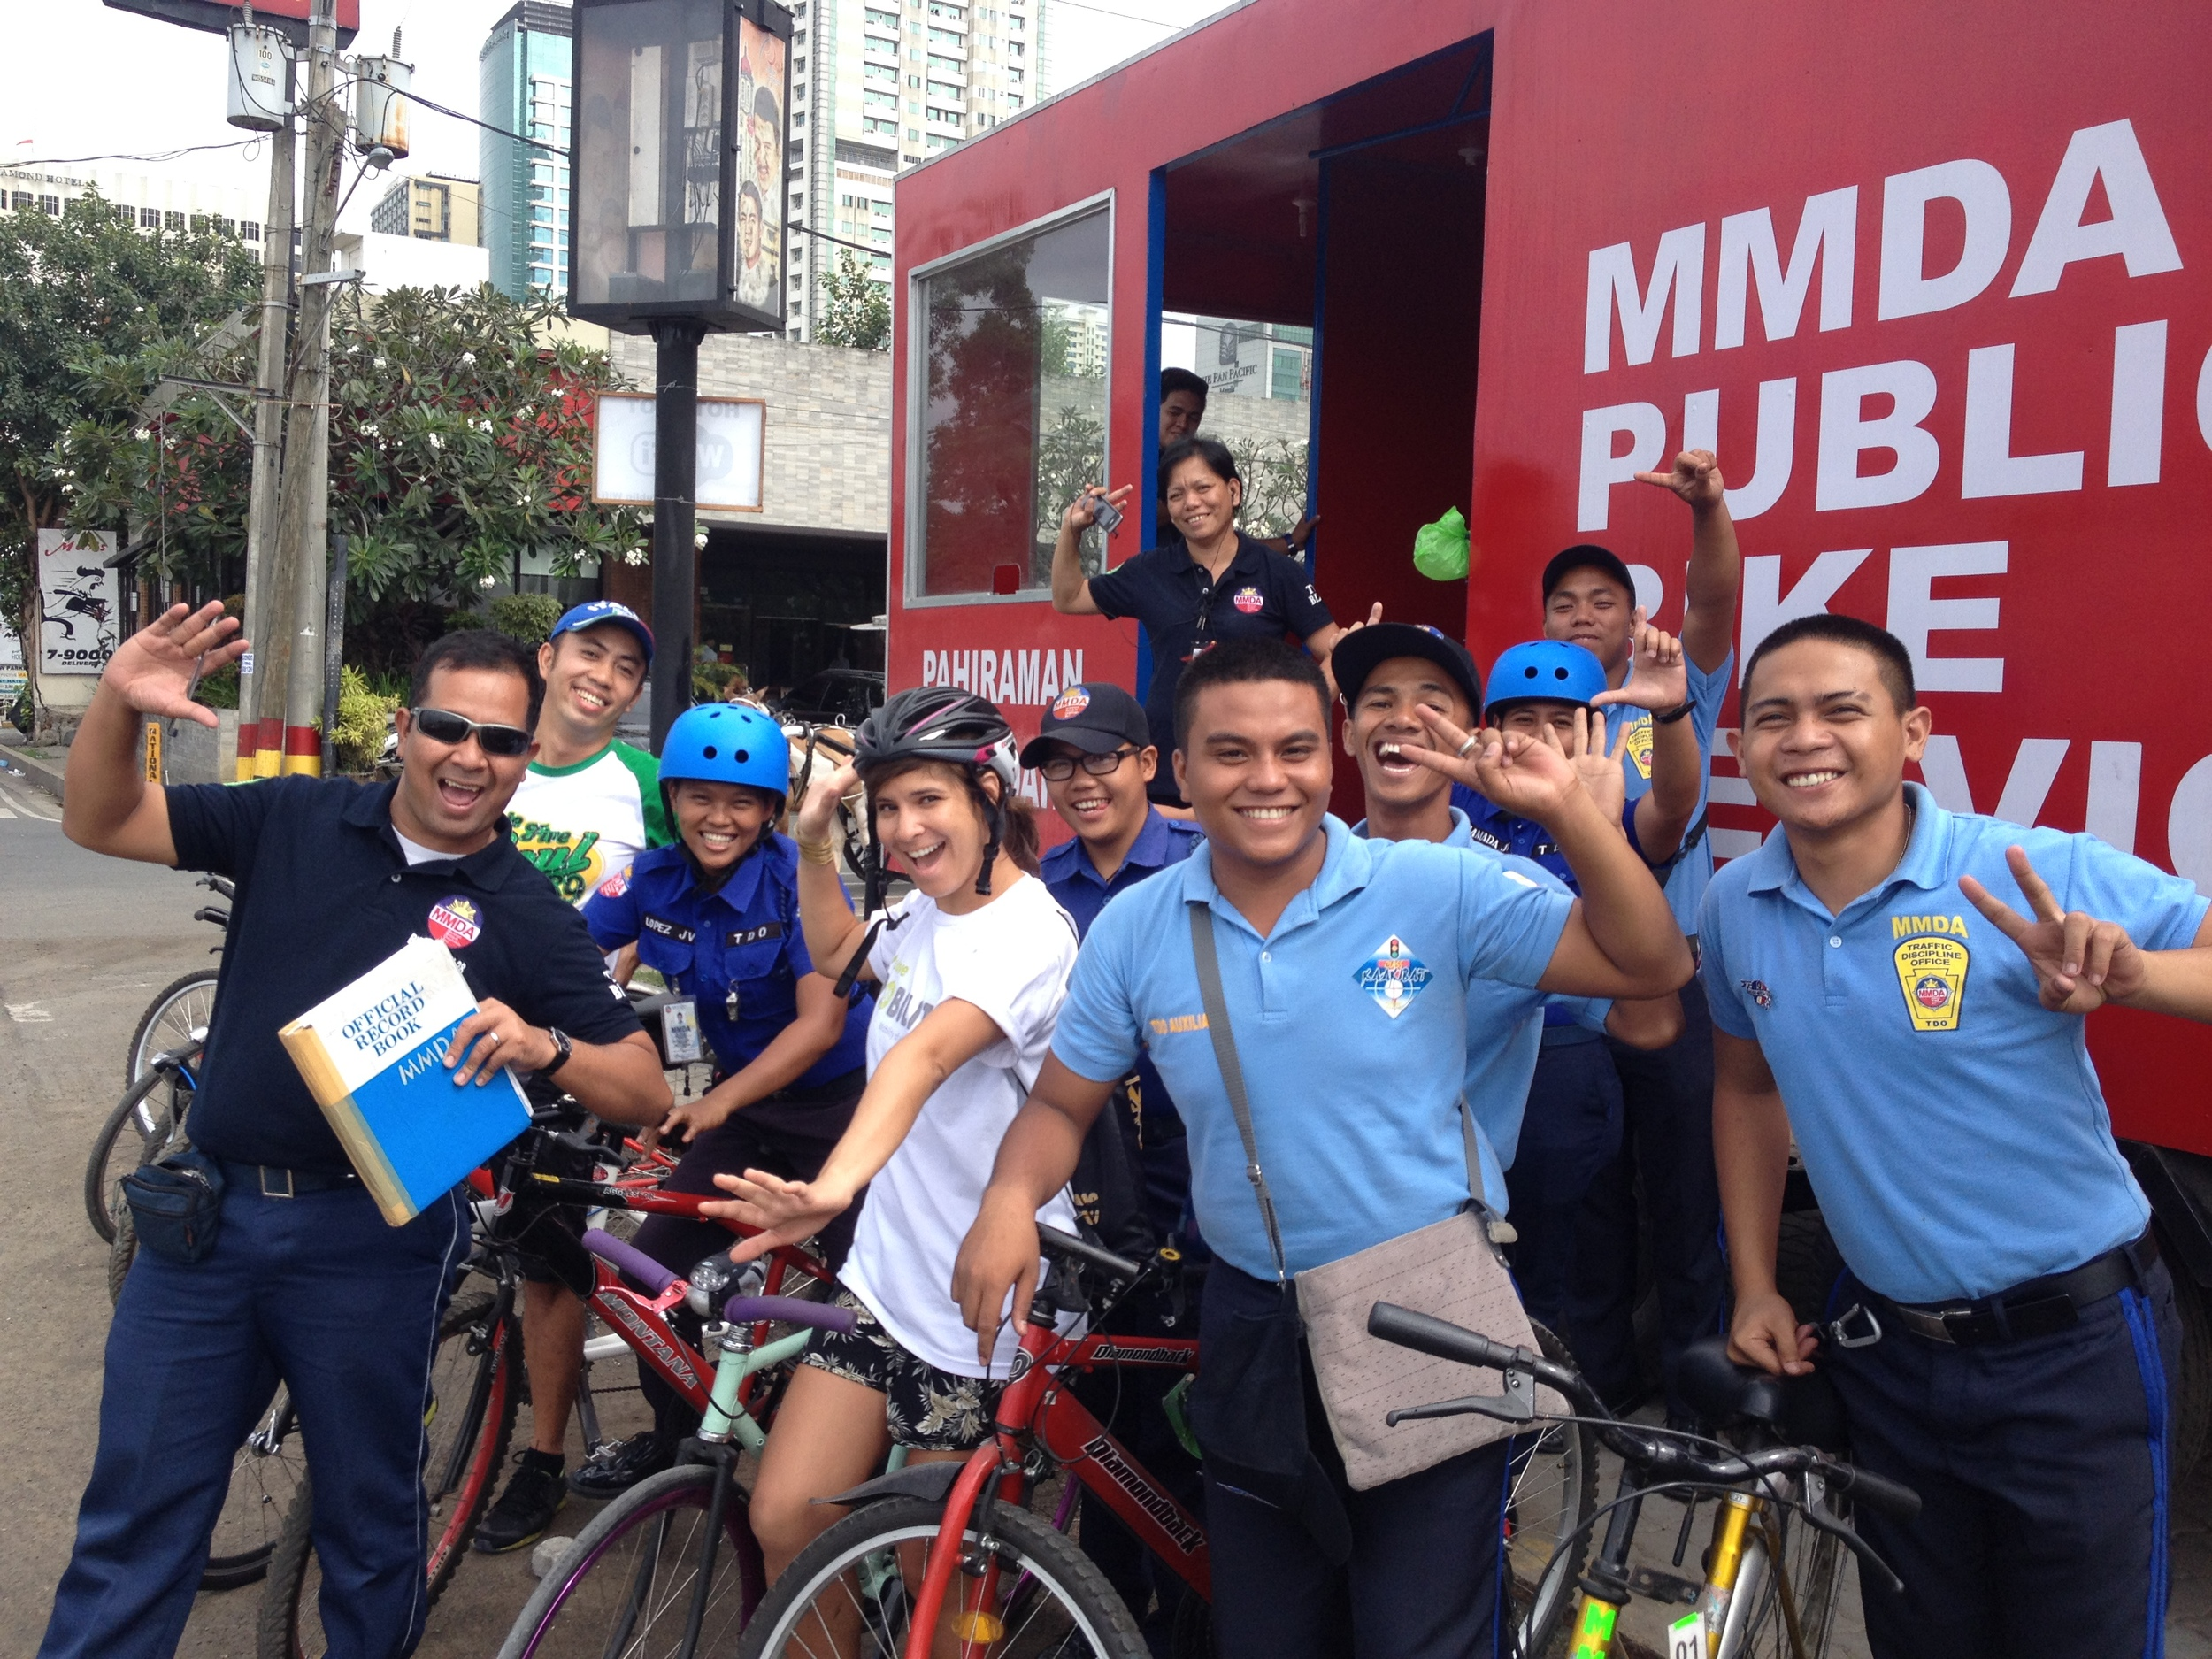 The MMDA Public Bike sharing service, which is really a free bike rental rather than a network of rentable bikes, starts tomorrow on Roxas Boulevard. Apparently, several participants did avail of the service this car-free day.